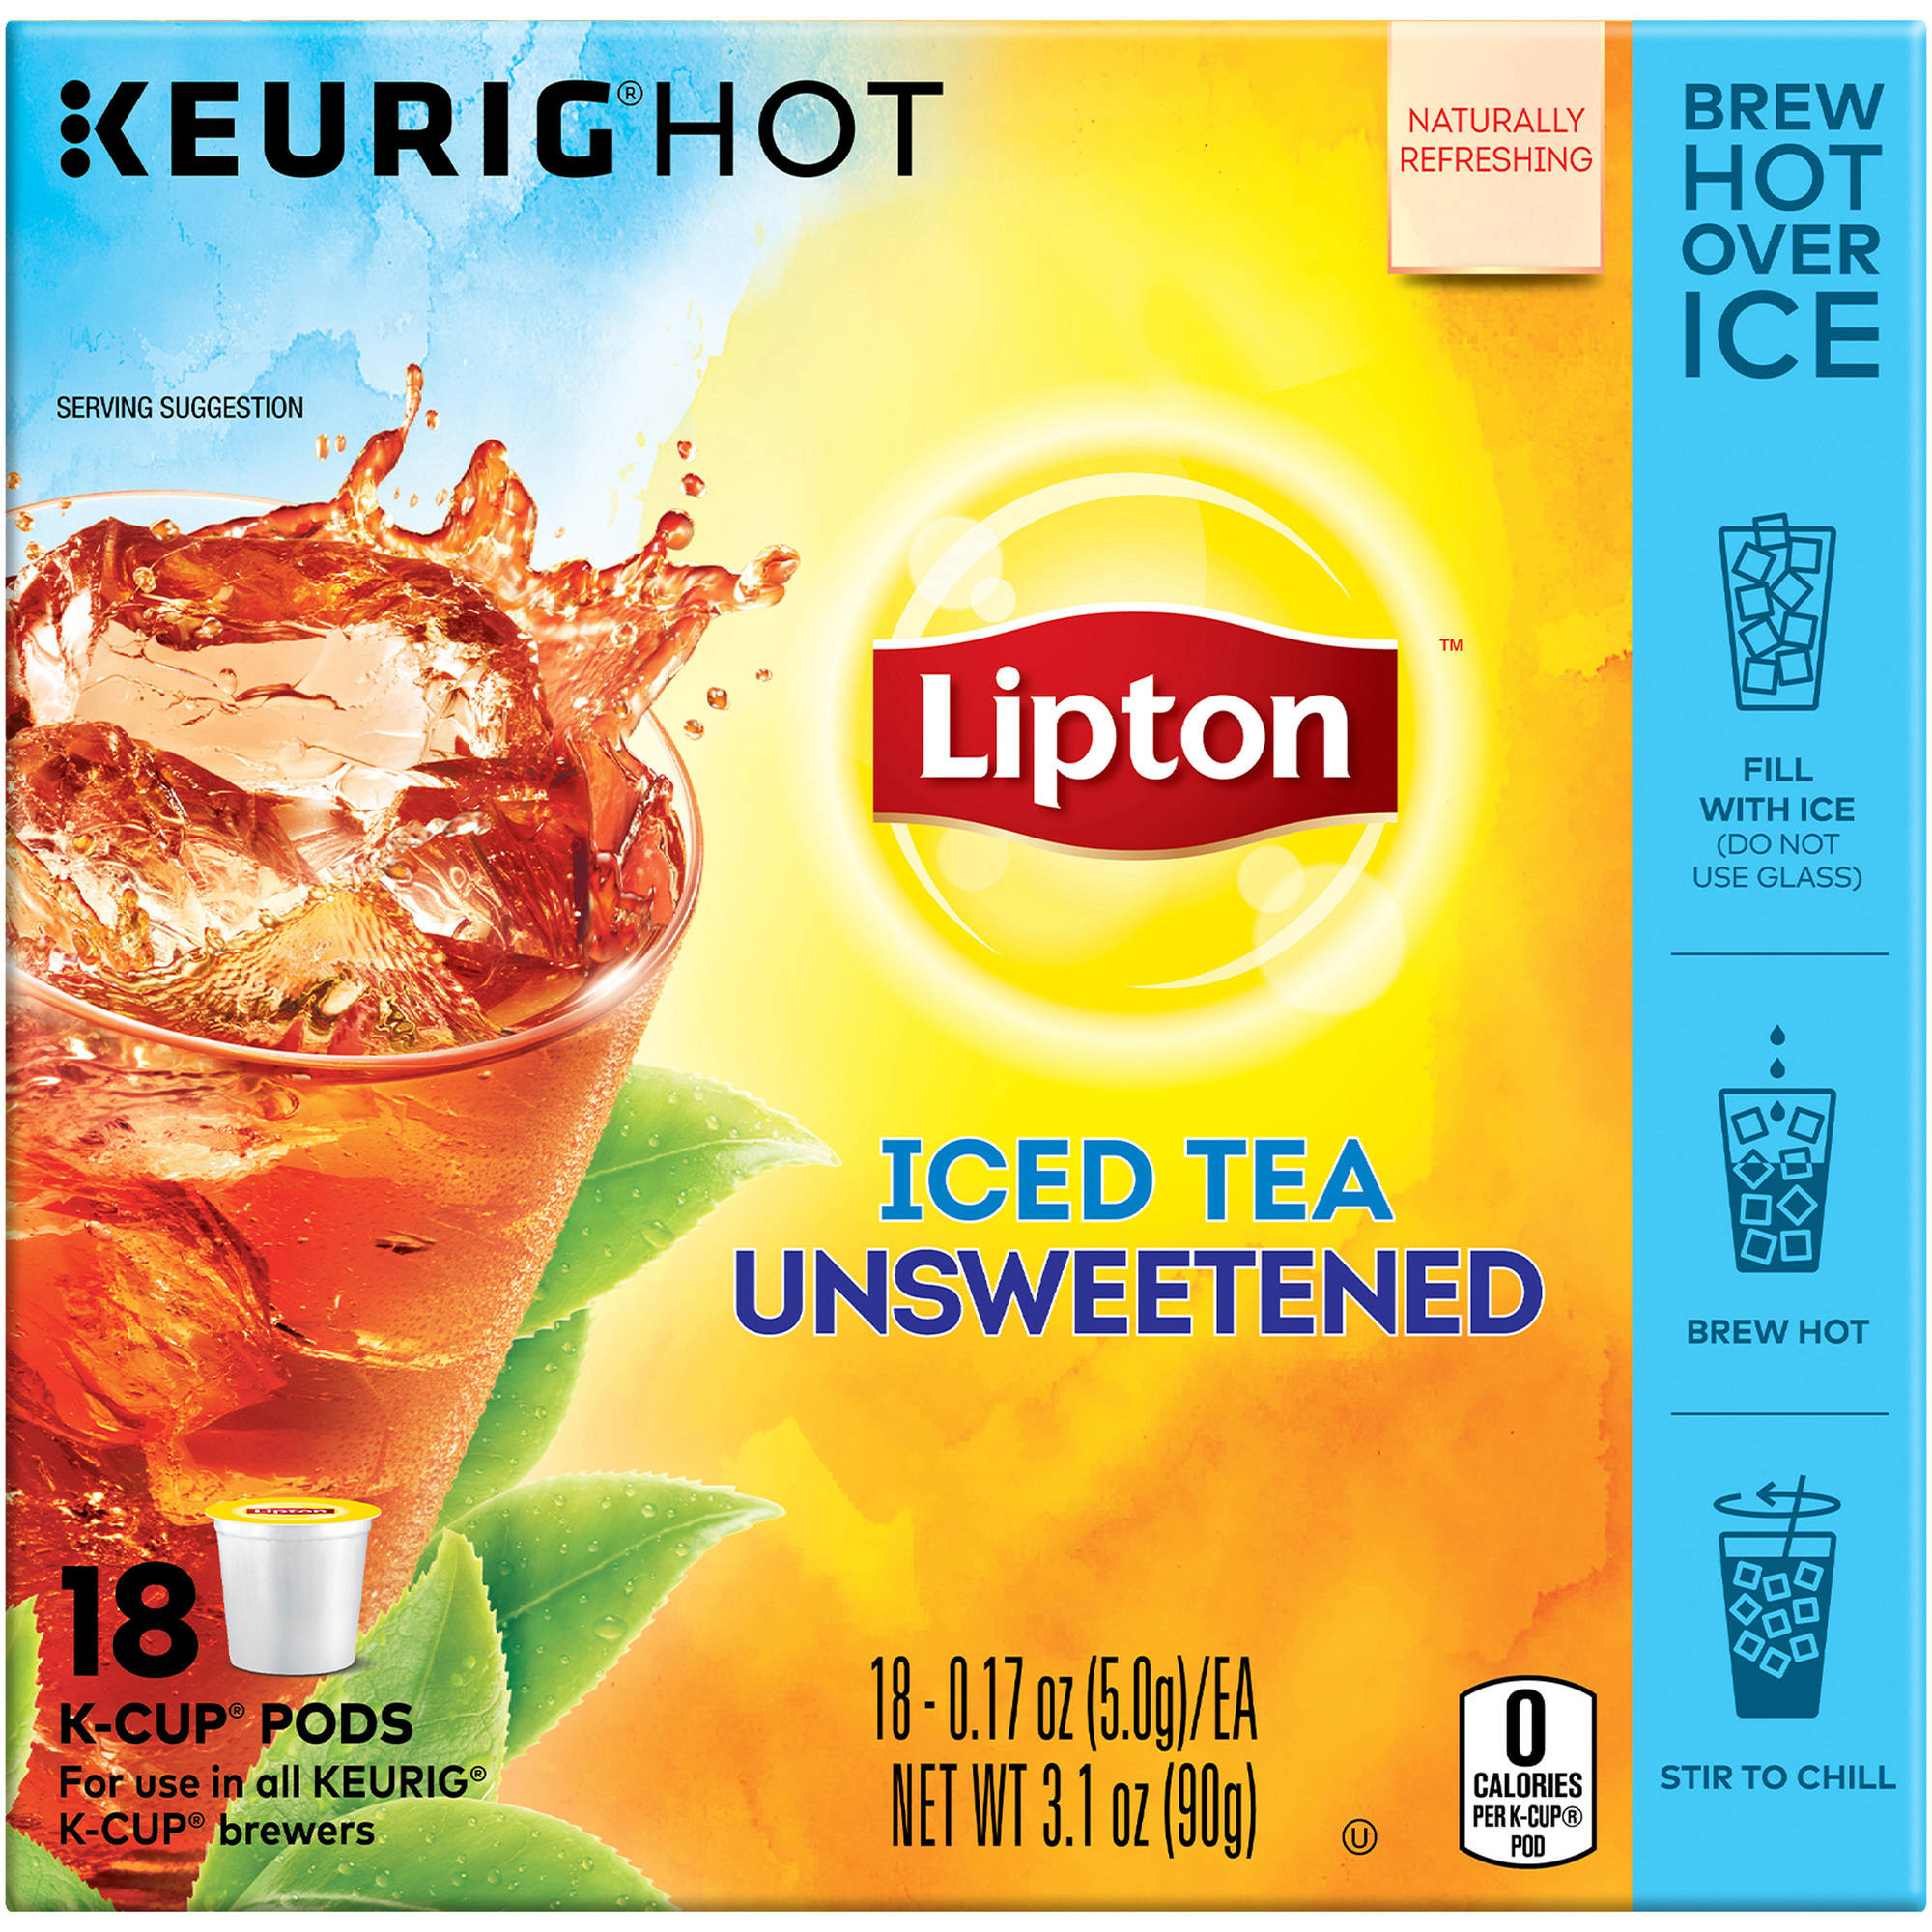 Lipton Unsweetened Iced Tea K-Cup Pods, .17 oz, 18 count